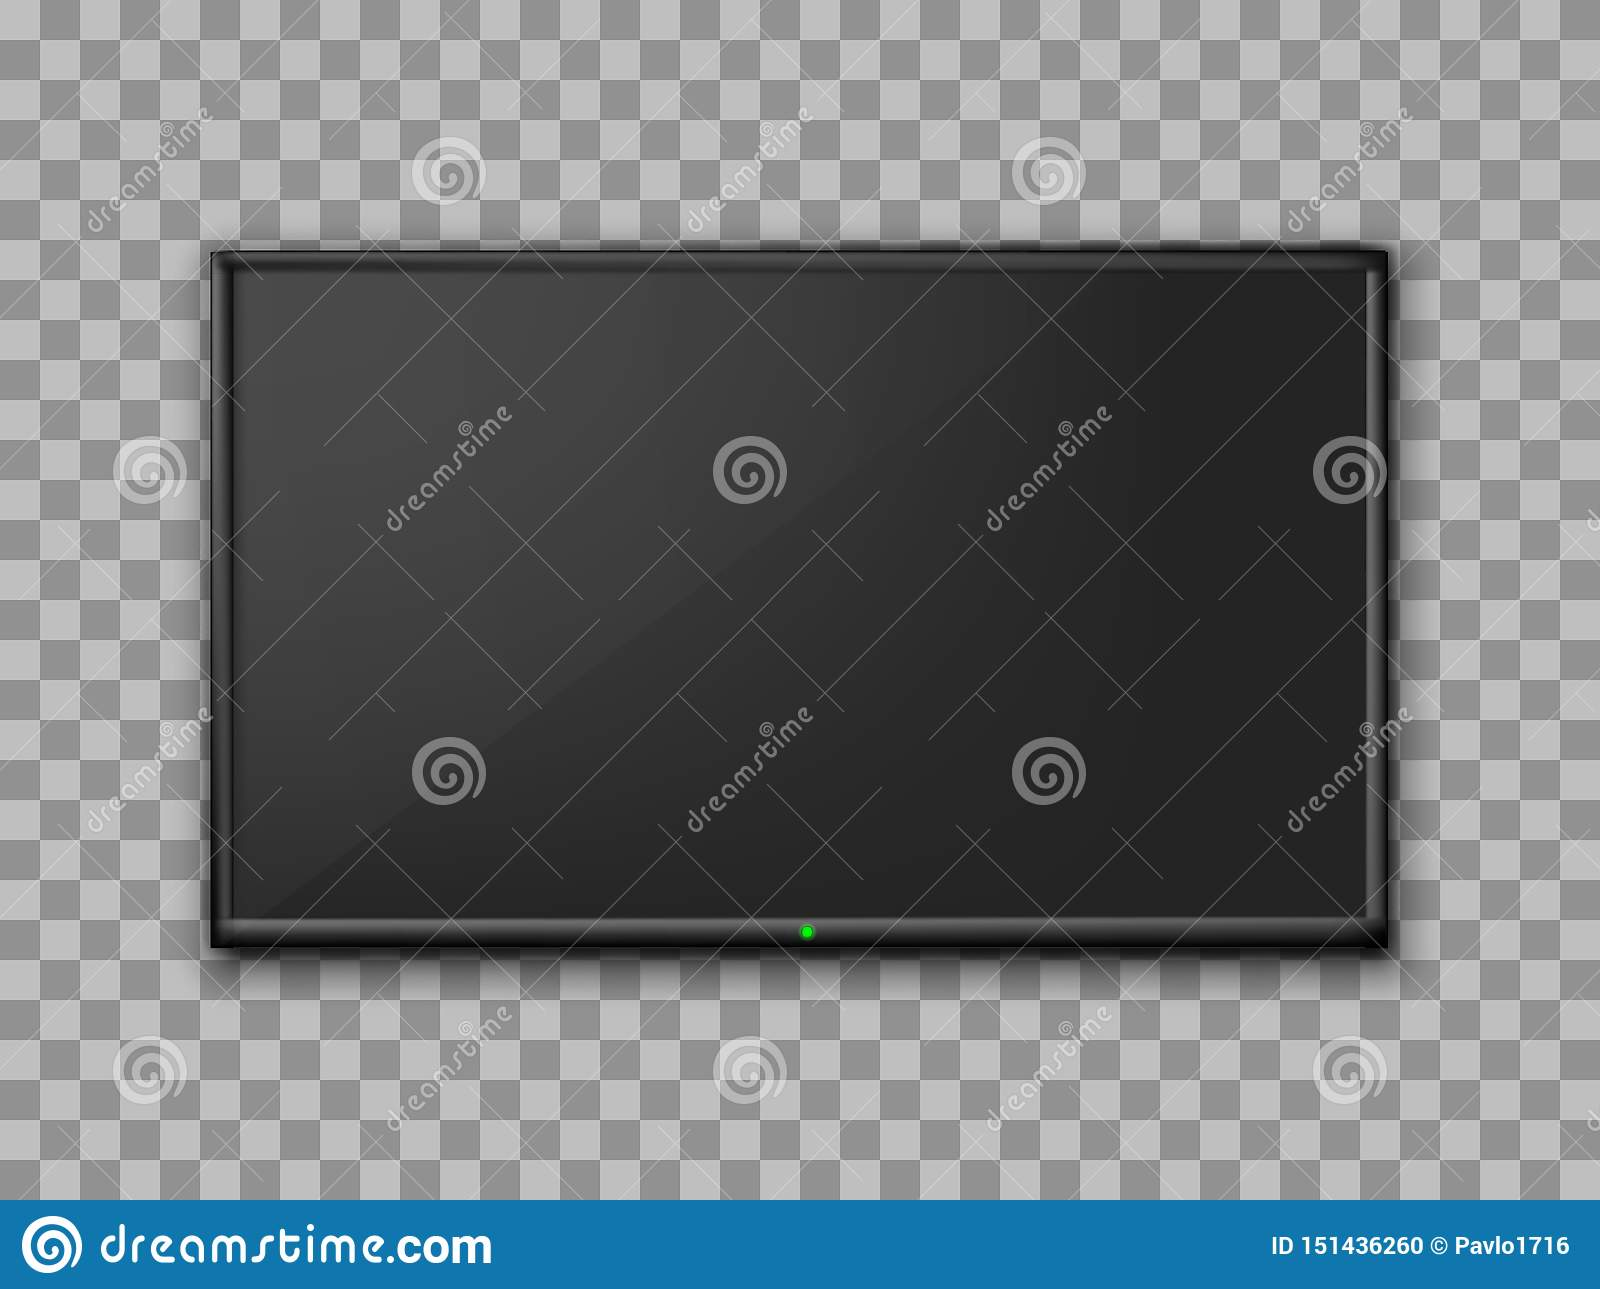 Realistic TV screen. Empty TV frame transparent background. Modern stylish lcd monitor, led type. Blank television template